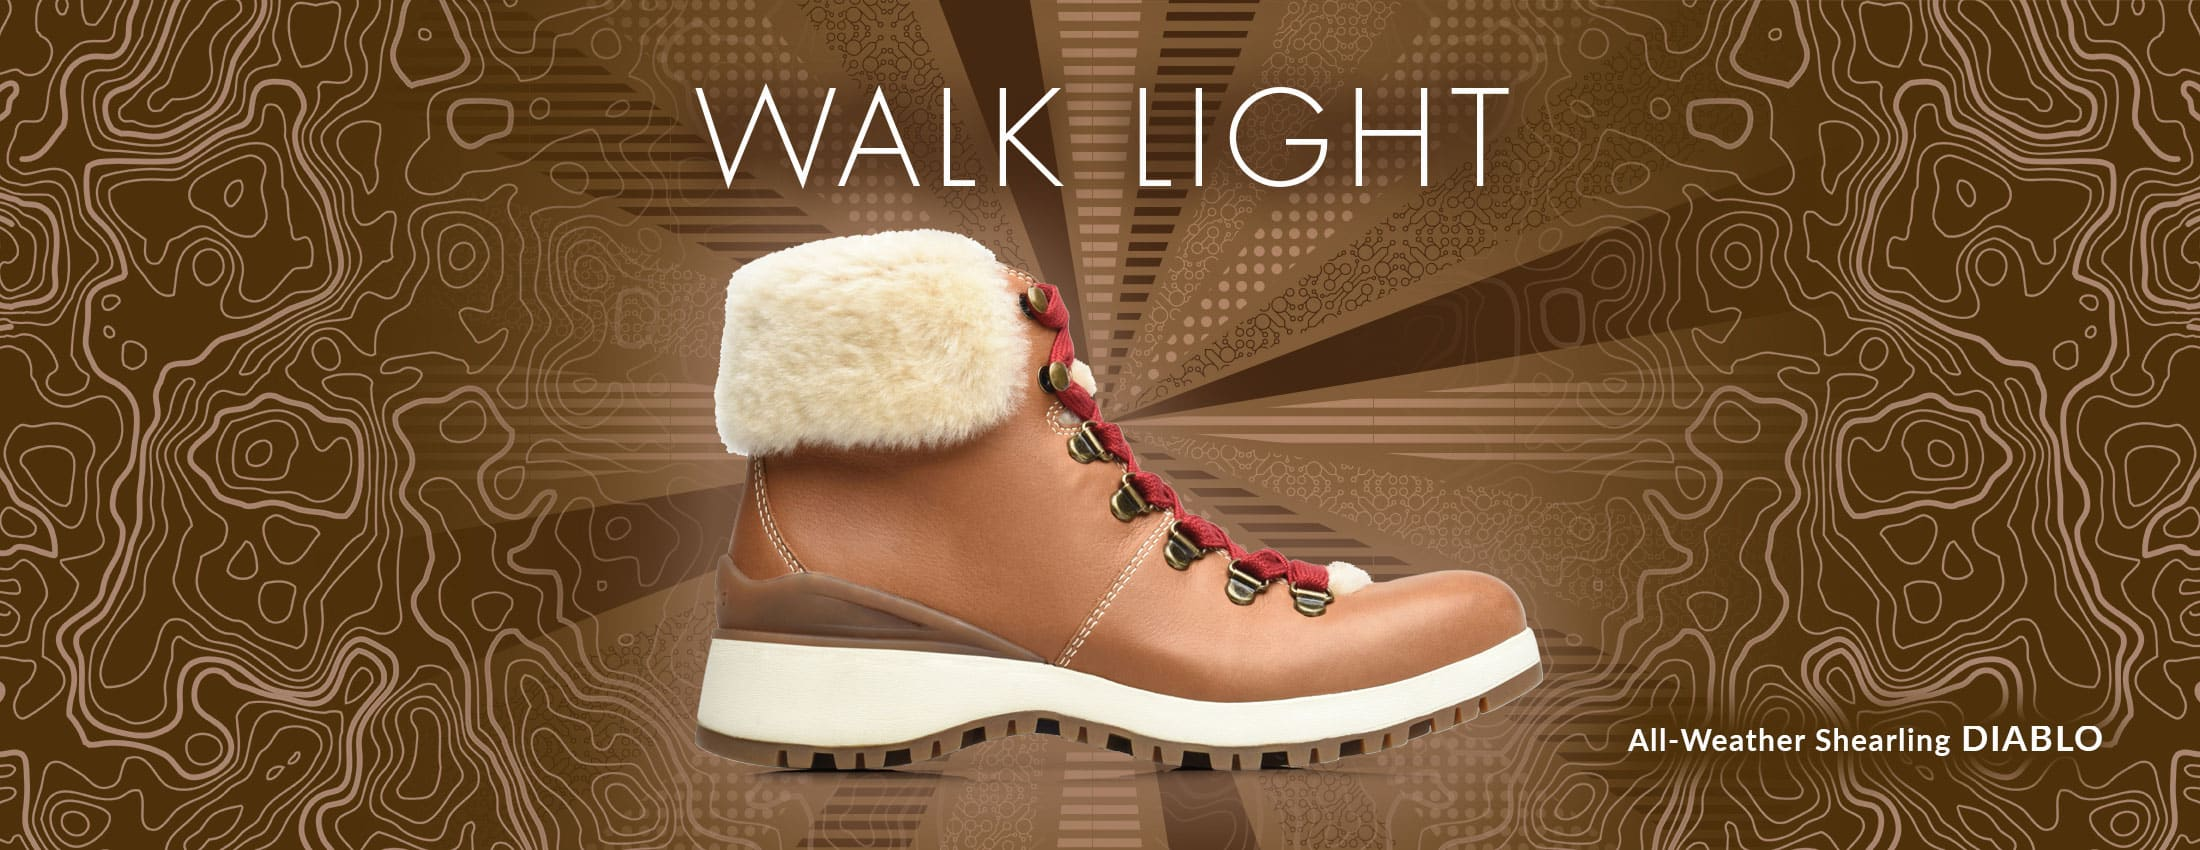 Walk Light. Featured style: All-Weather Shearling Diablo boot, shown in luggage brown with red laces